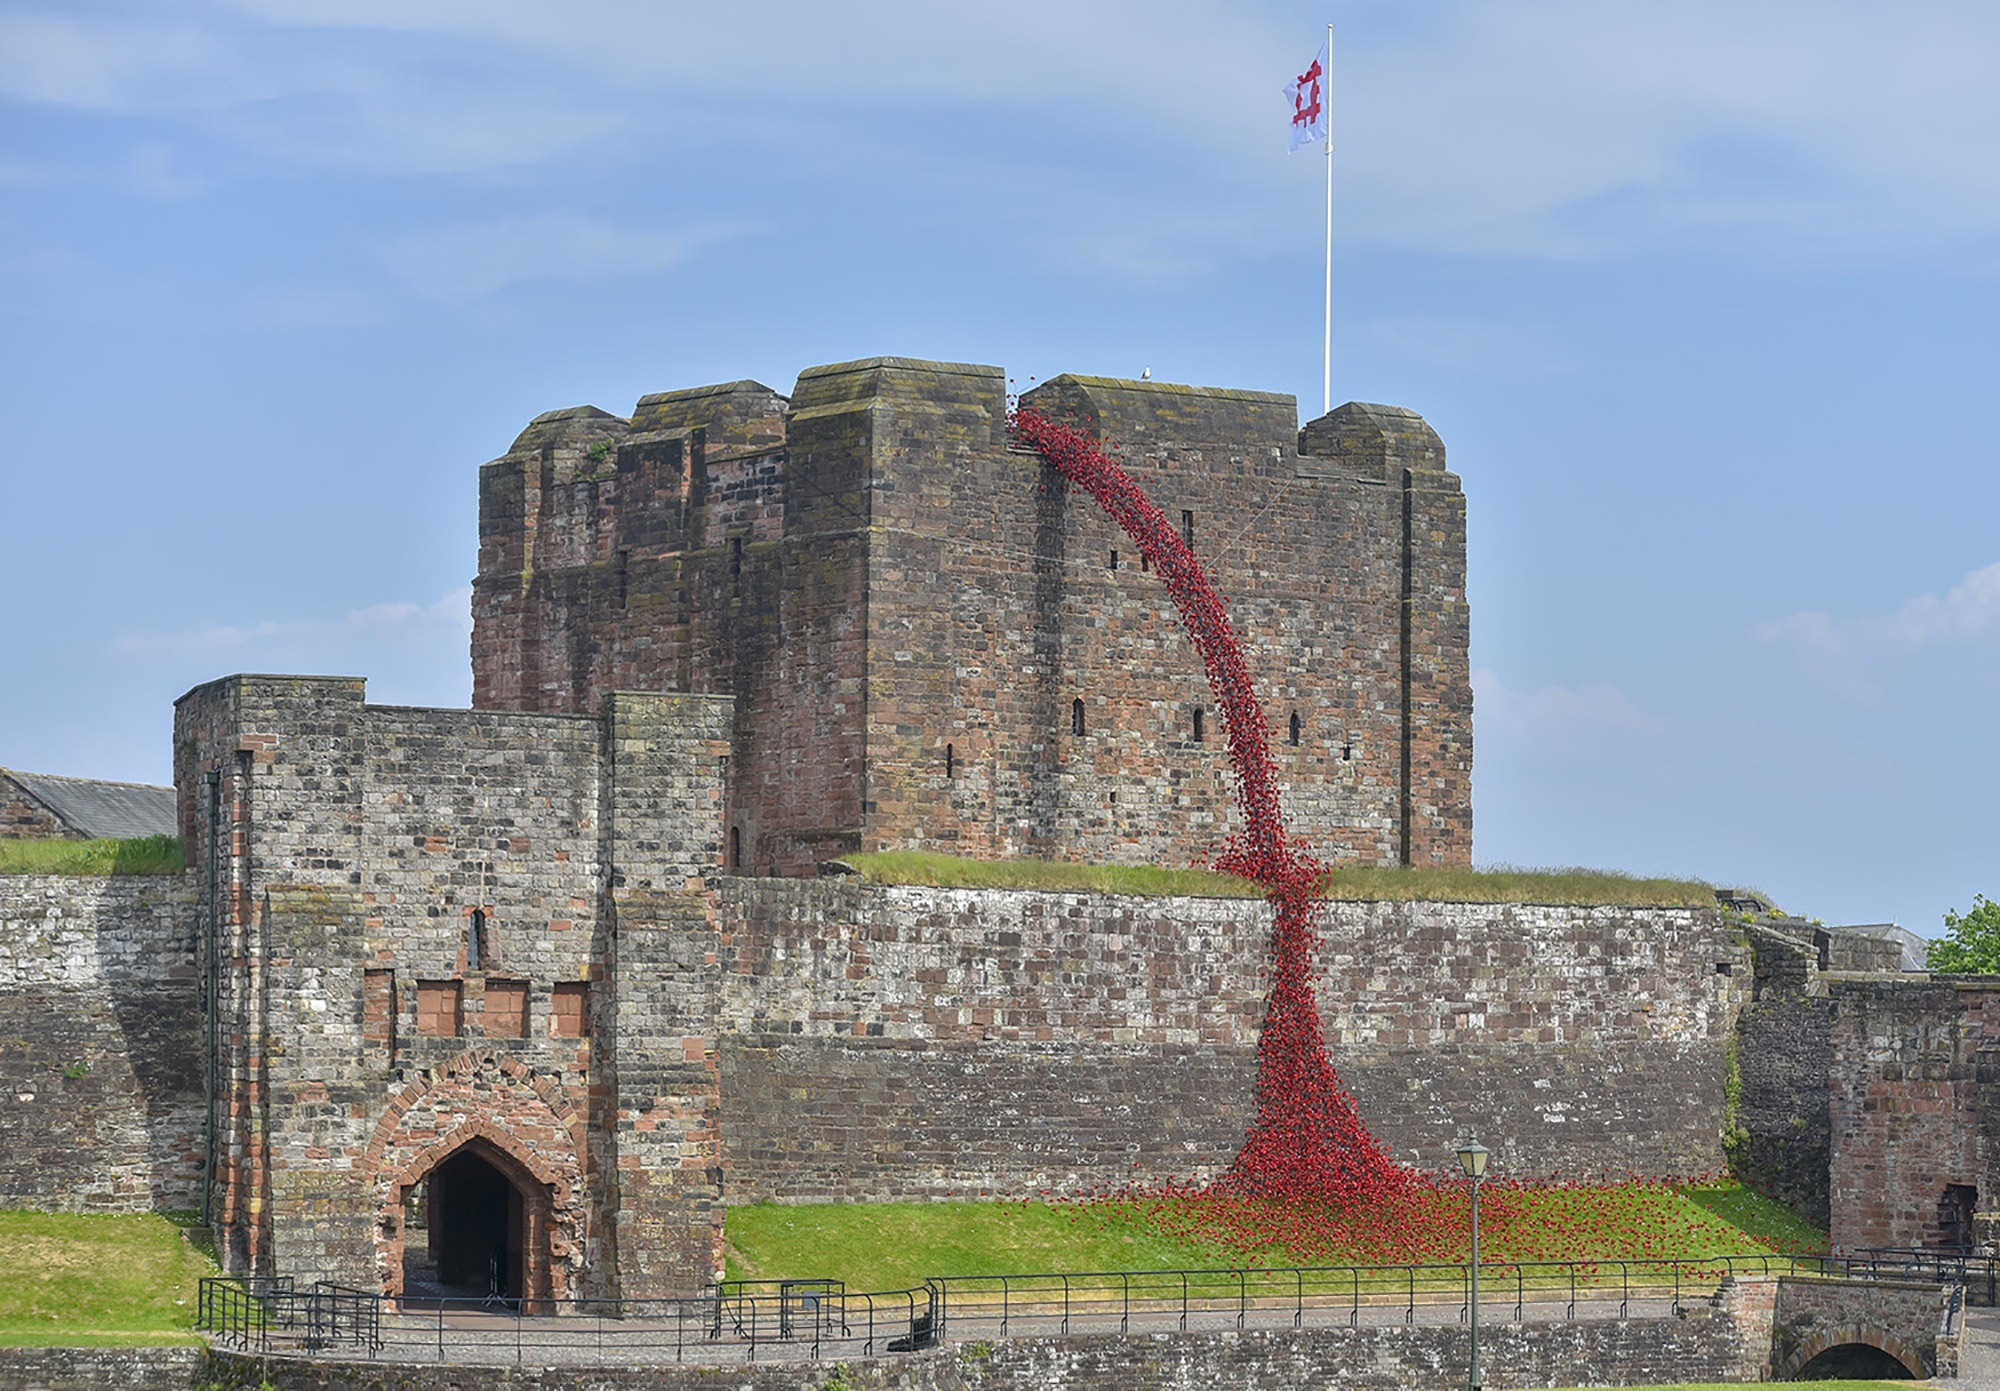 Poppies: Weeping Window at Carlisle Castle. The sculpture opens at Carlisle Castle to the public on 23rd May. The work by artist Paul Cummins (pictured left) and designer Tom Piper will form part of the final year of 14-18 NOW's UK-wide tour of the po